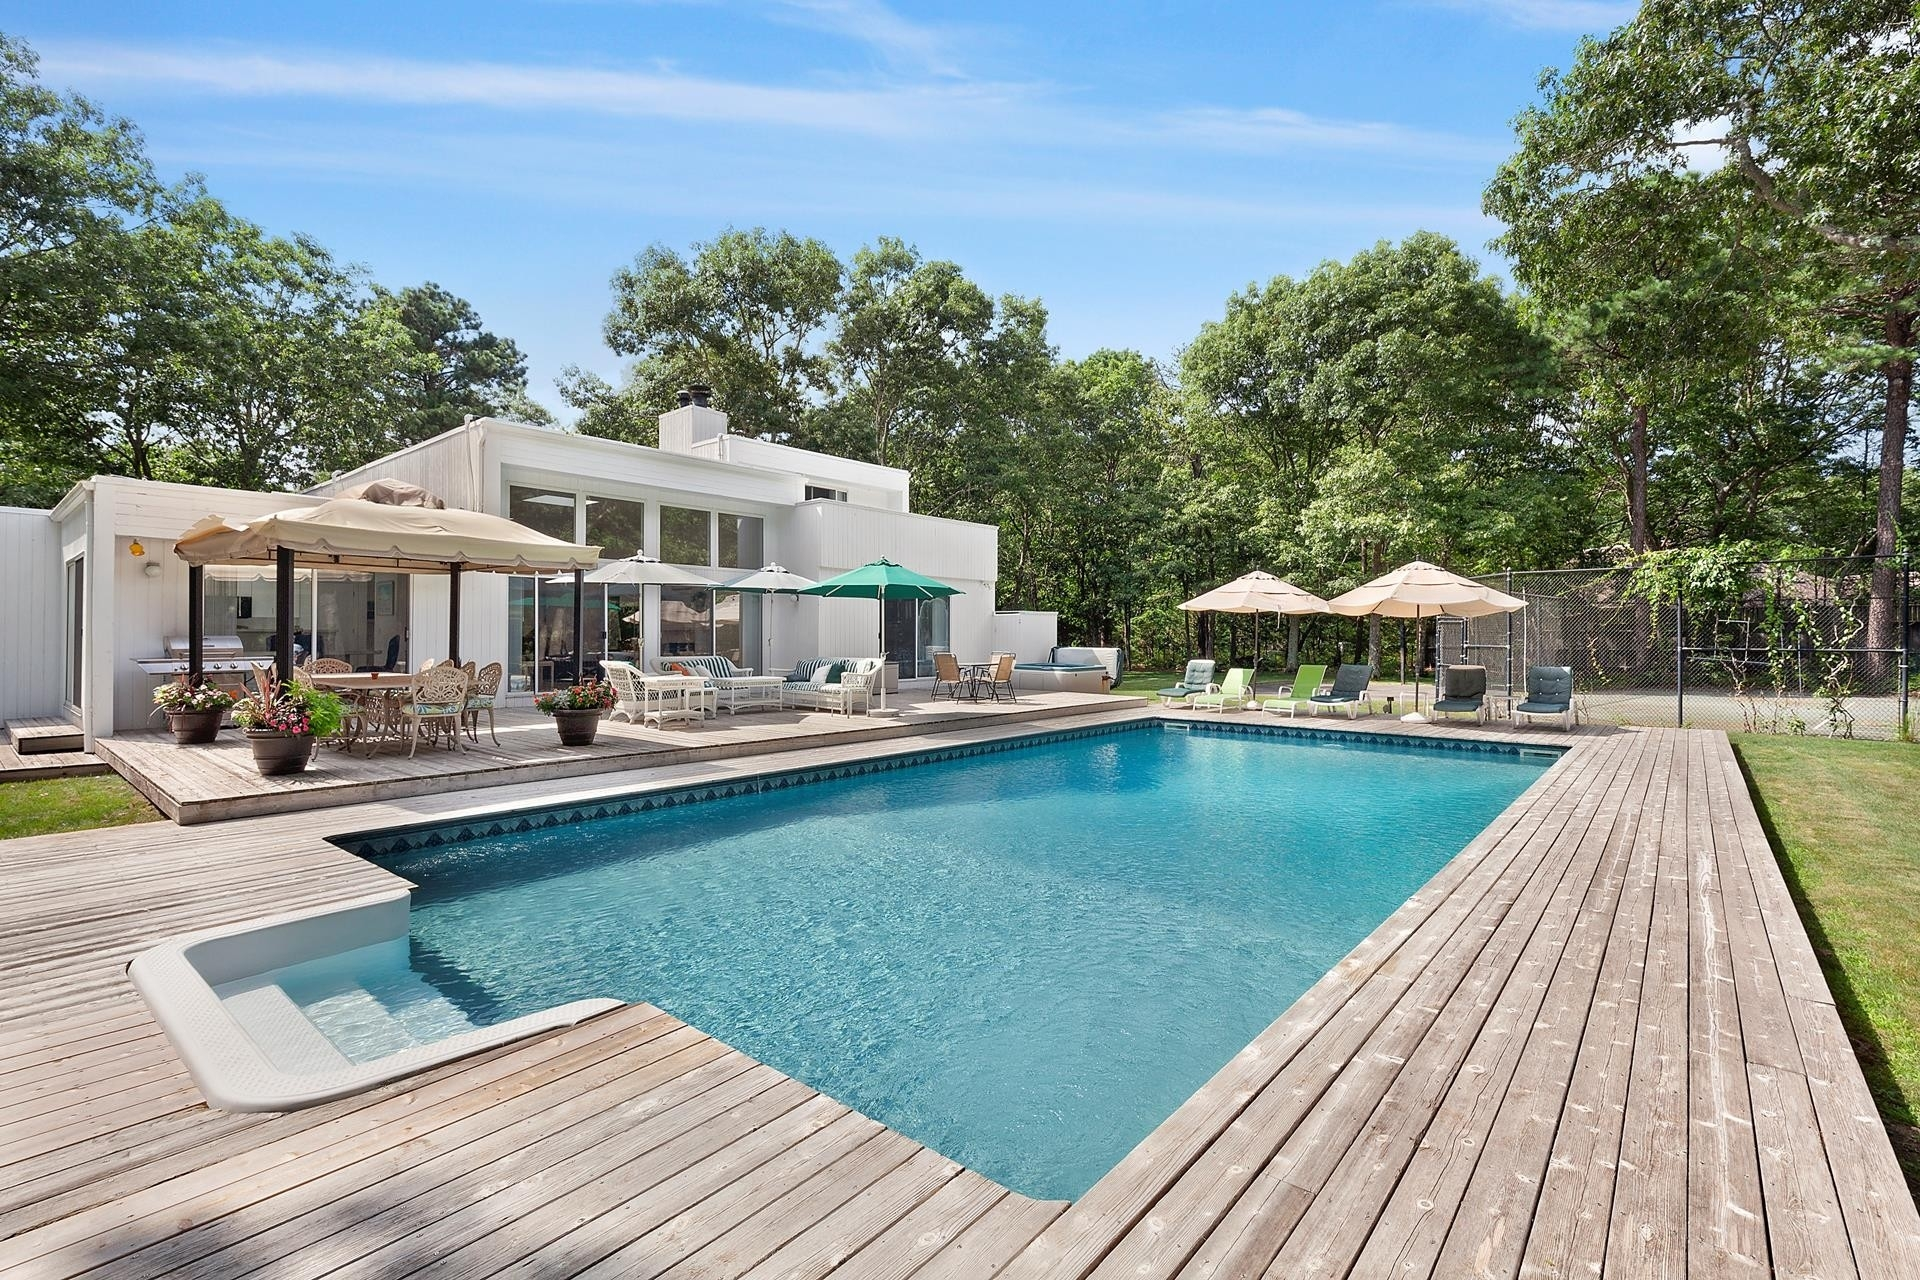 Property at East Quogue